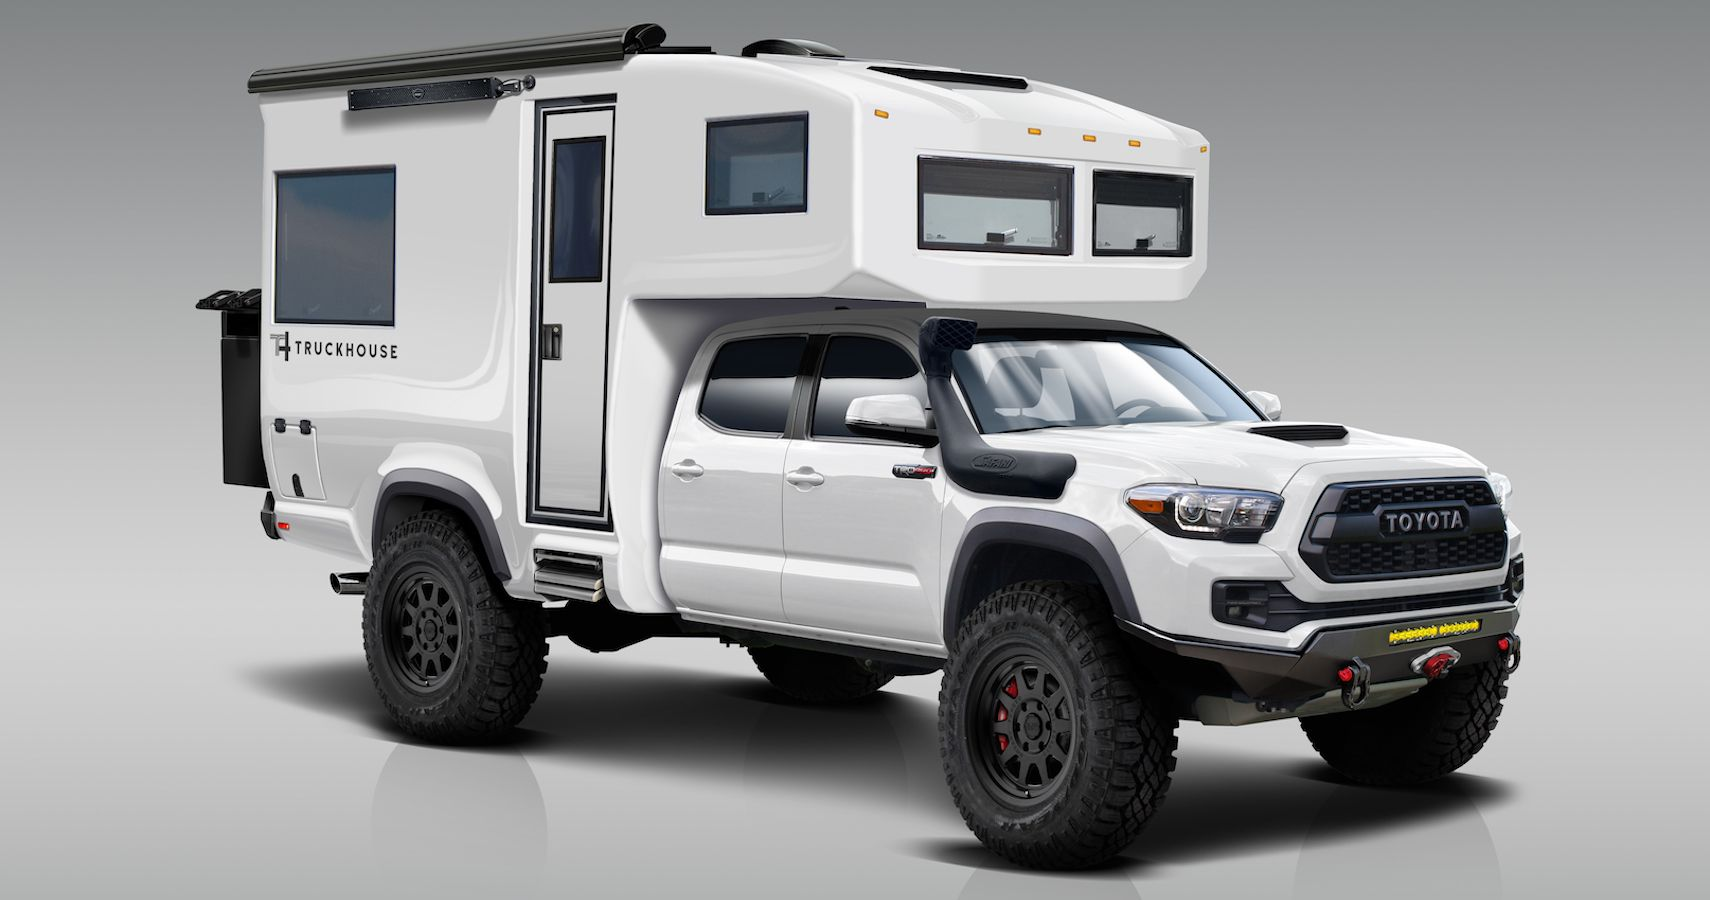 This Company Will Turn Your Toyota Tacoma Into The Ultimate Glamping Camper